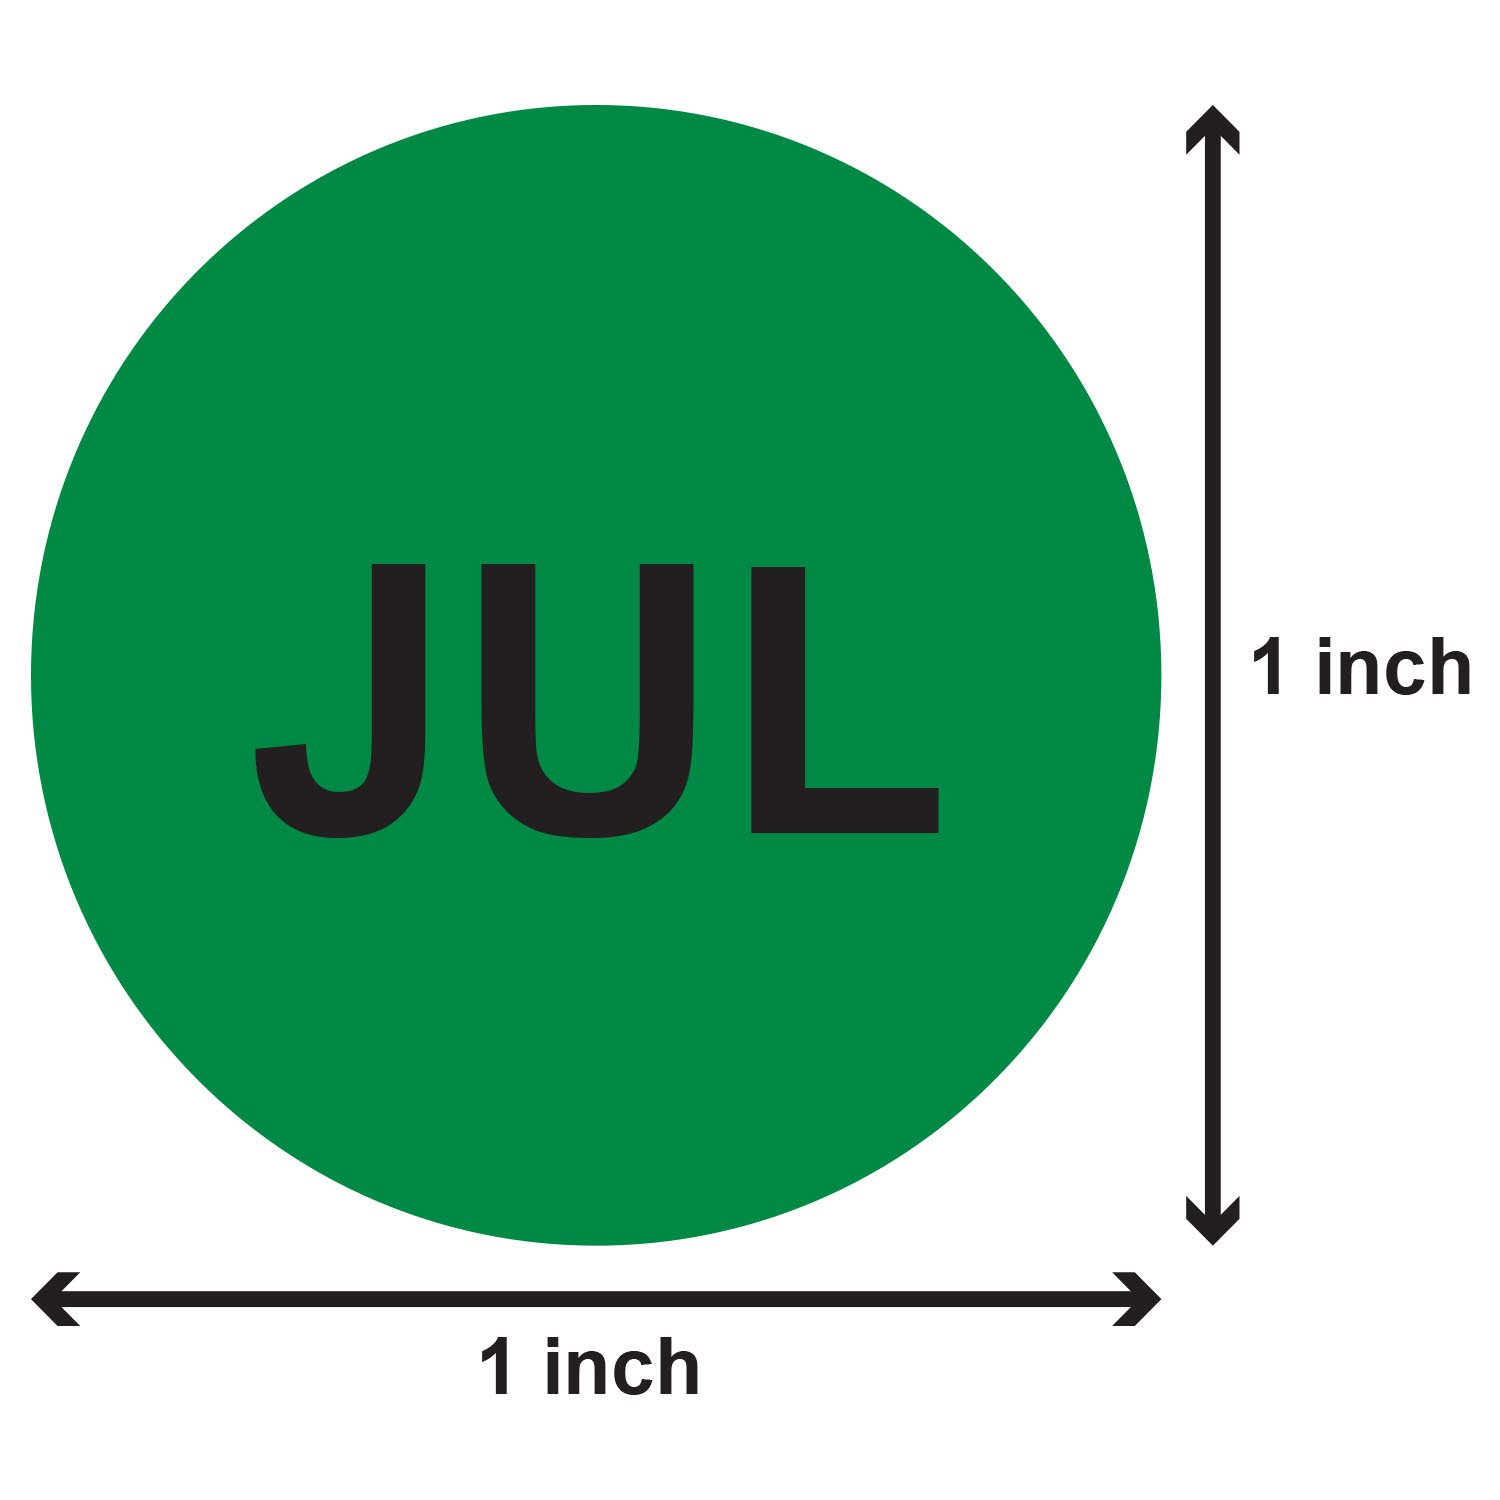 12 Months of the Year Labels Color Coding Dot Round Self Adhesive Stickers (1'' Round Dot Stickers) - 300 stickers per Month - 3600 stickers total by OfficeSmartLabels (Image #8)